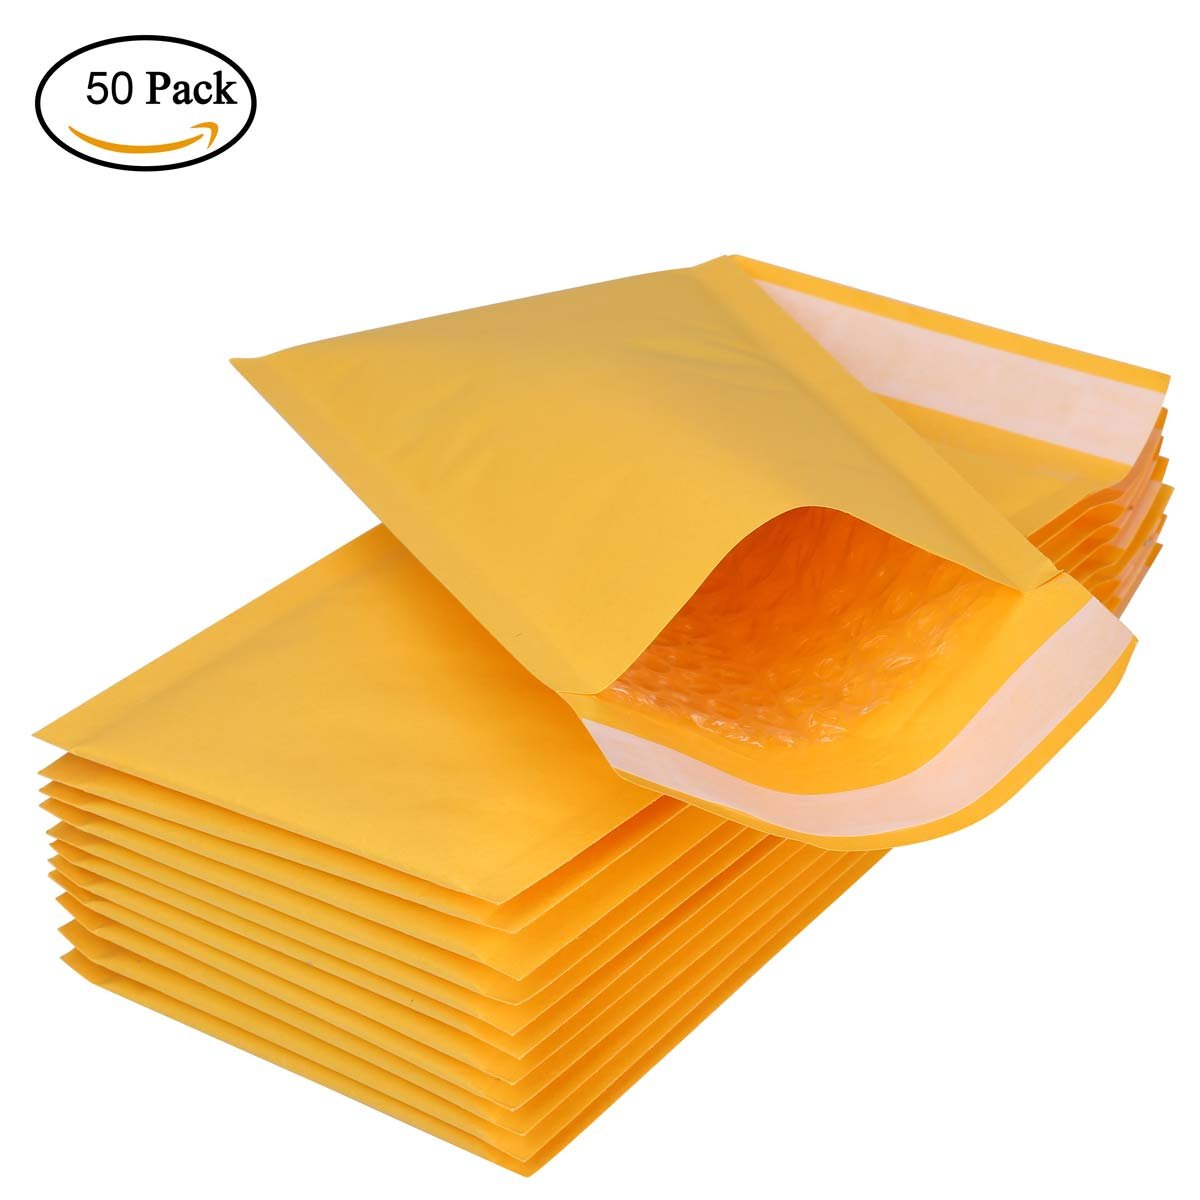 50 pcs Packaging Supplies Kraft Bubble Mailers Envelopes Plastic Mailing Bags 4.3 * 8.3 Inch BTYMS